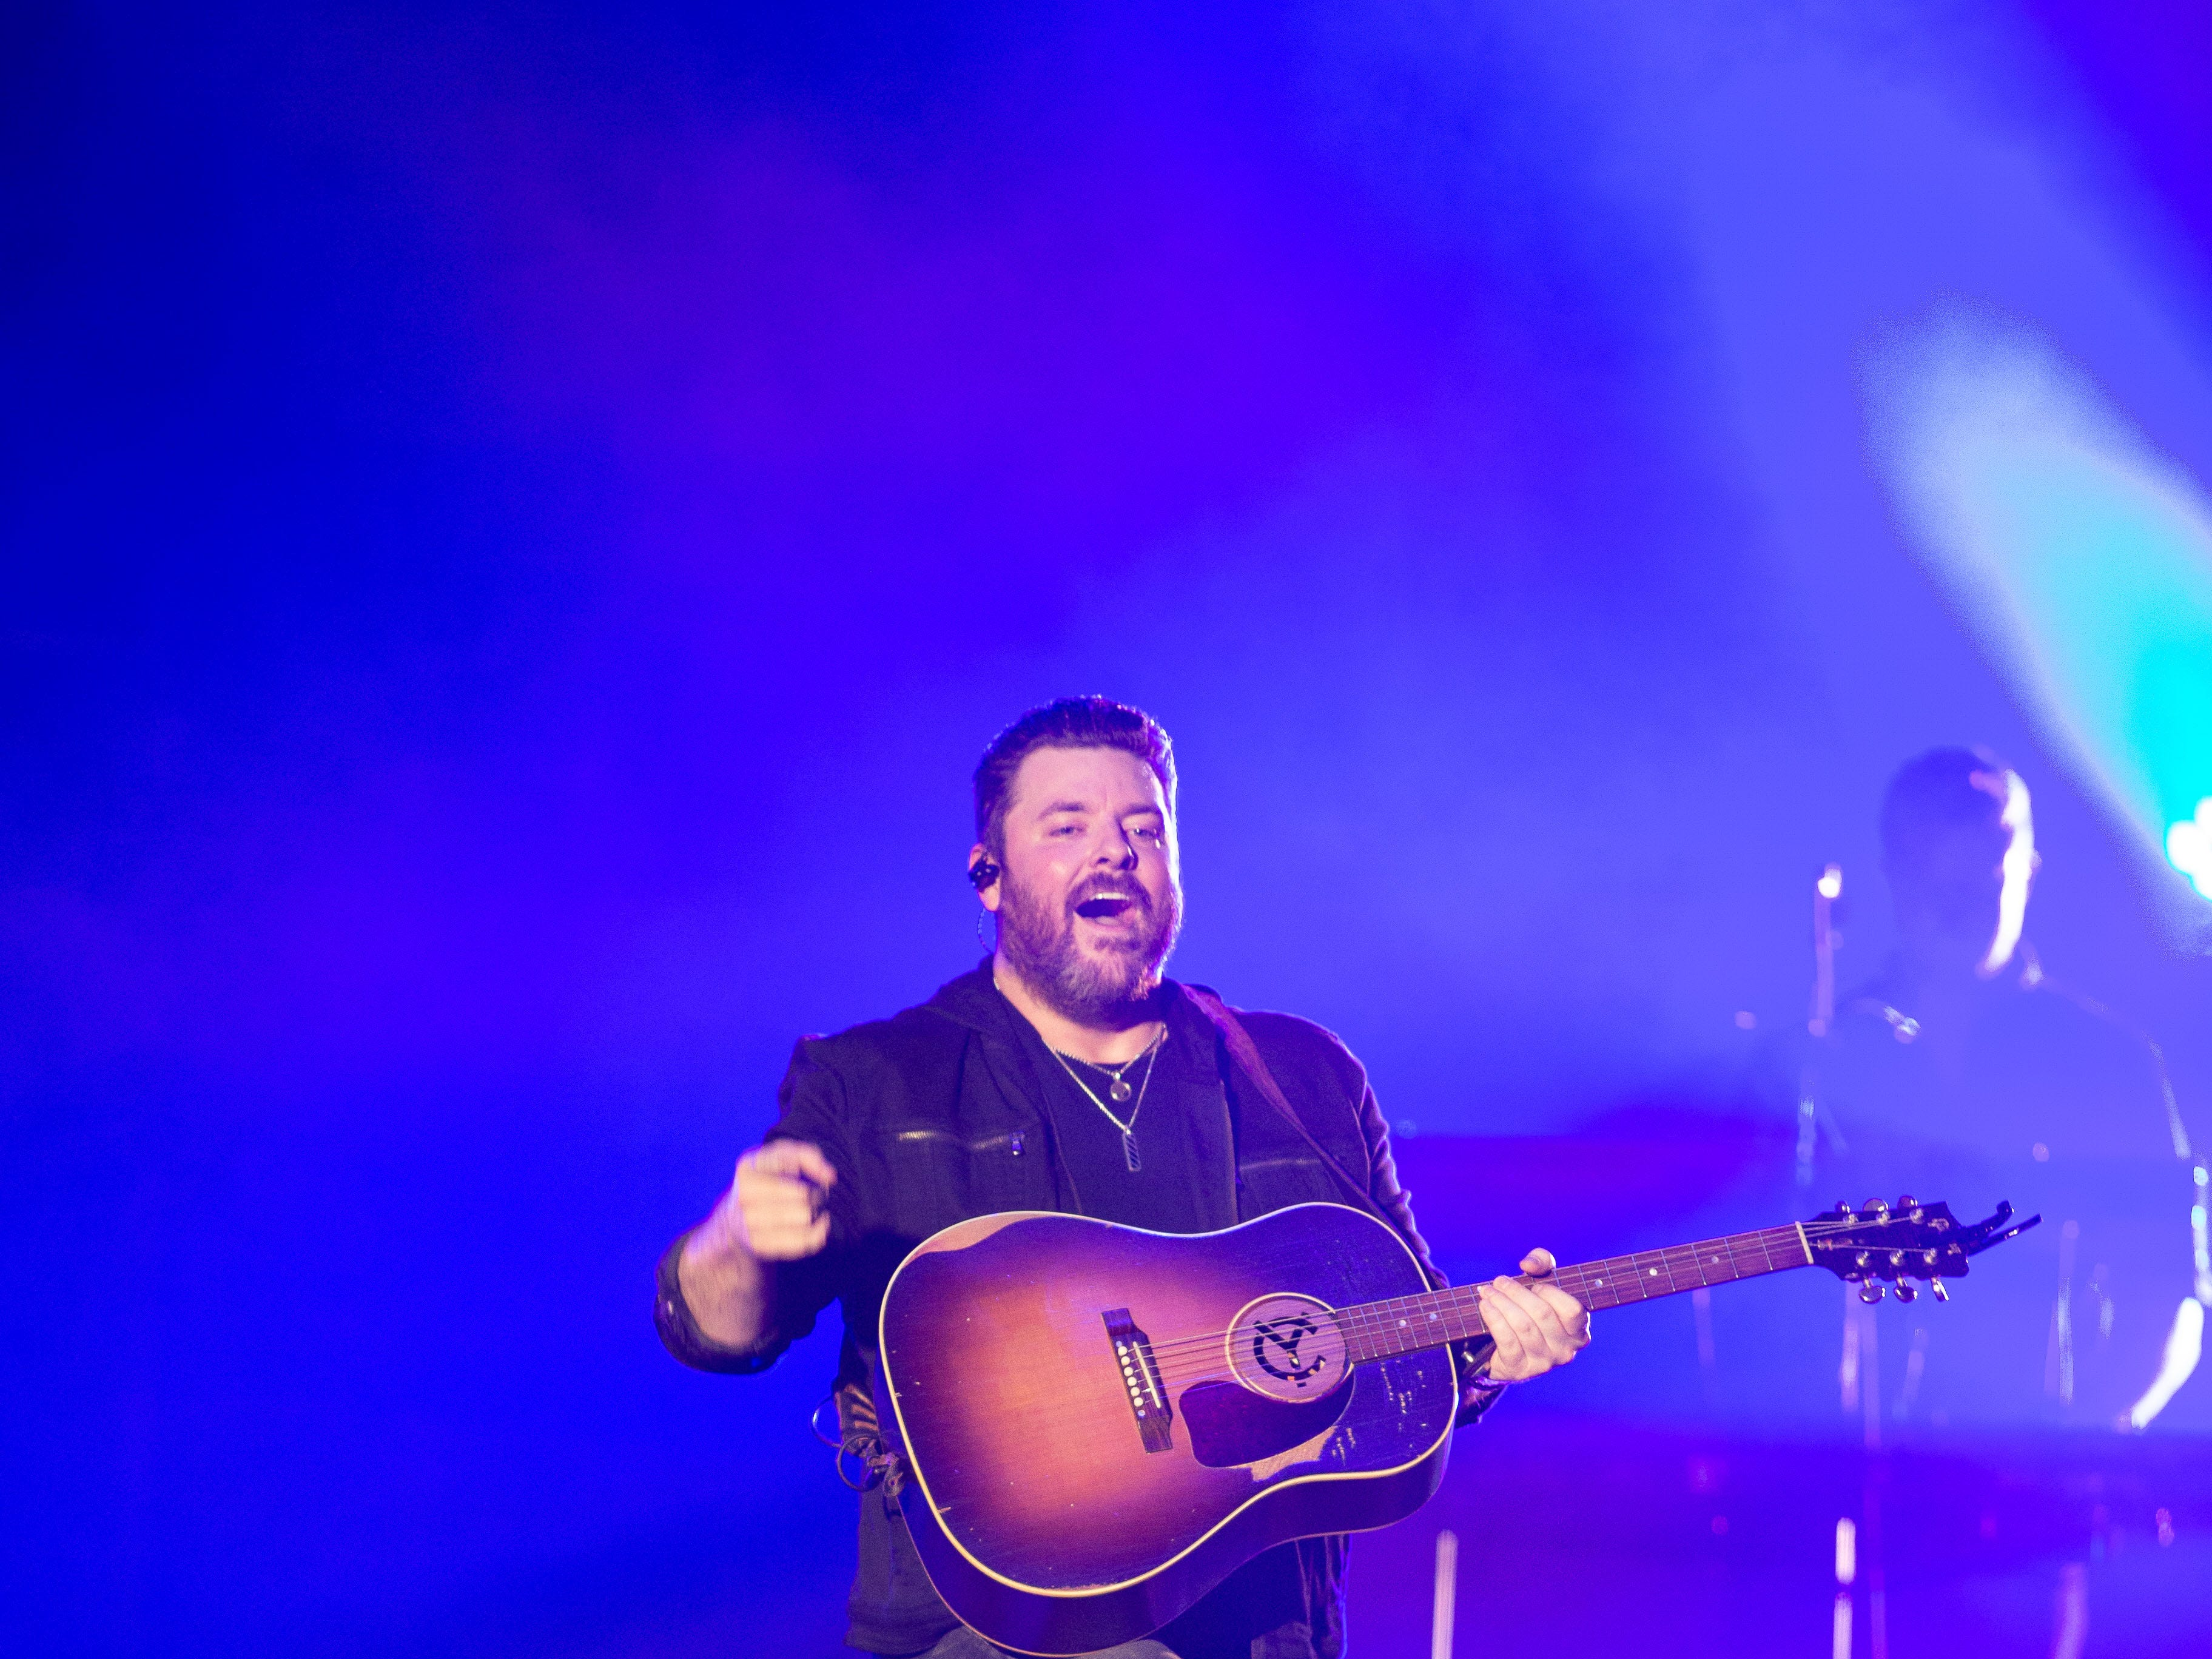 Chris Young gets the crowd going during his concert held at the Pan Am Center in Las Cruces on Thursday, Sept. 13, 2018.